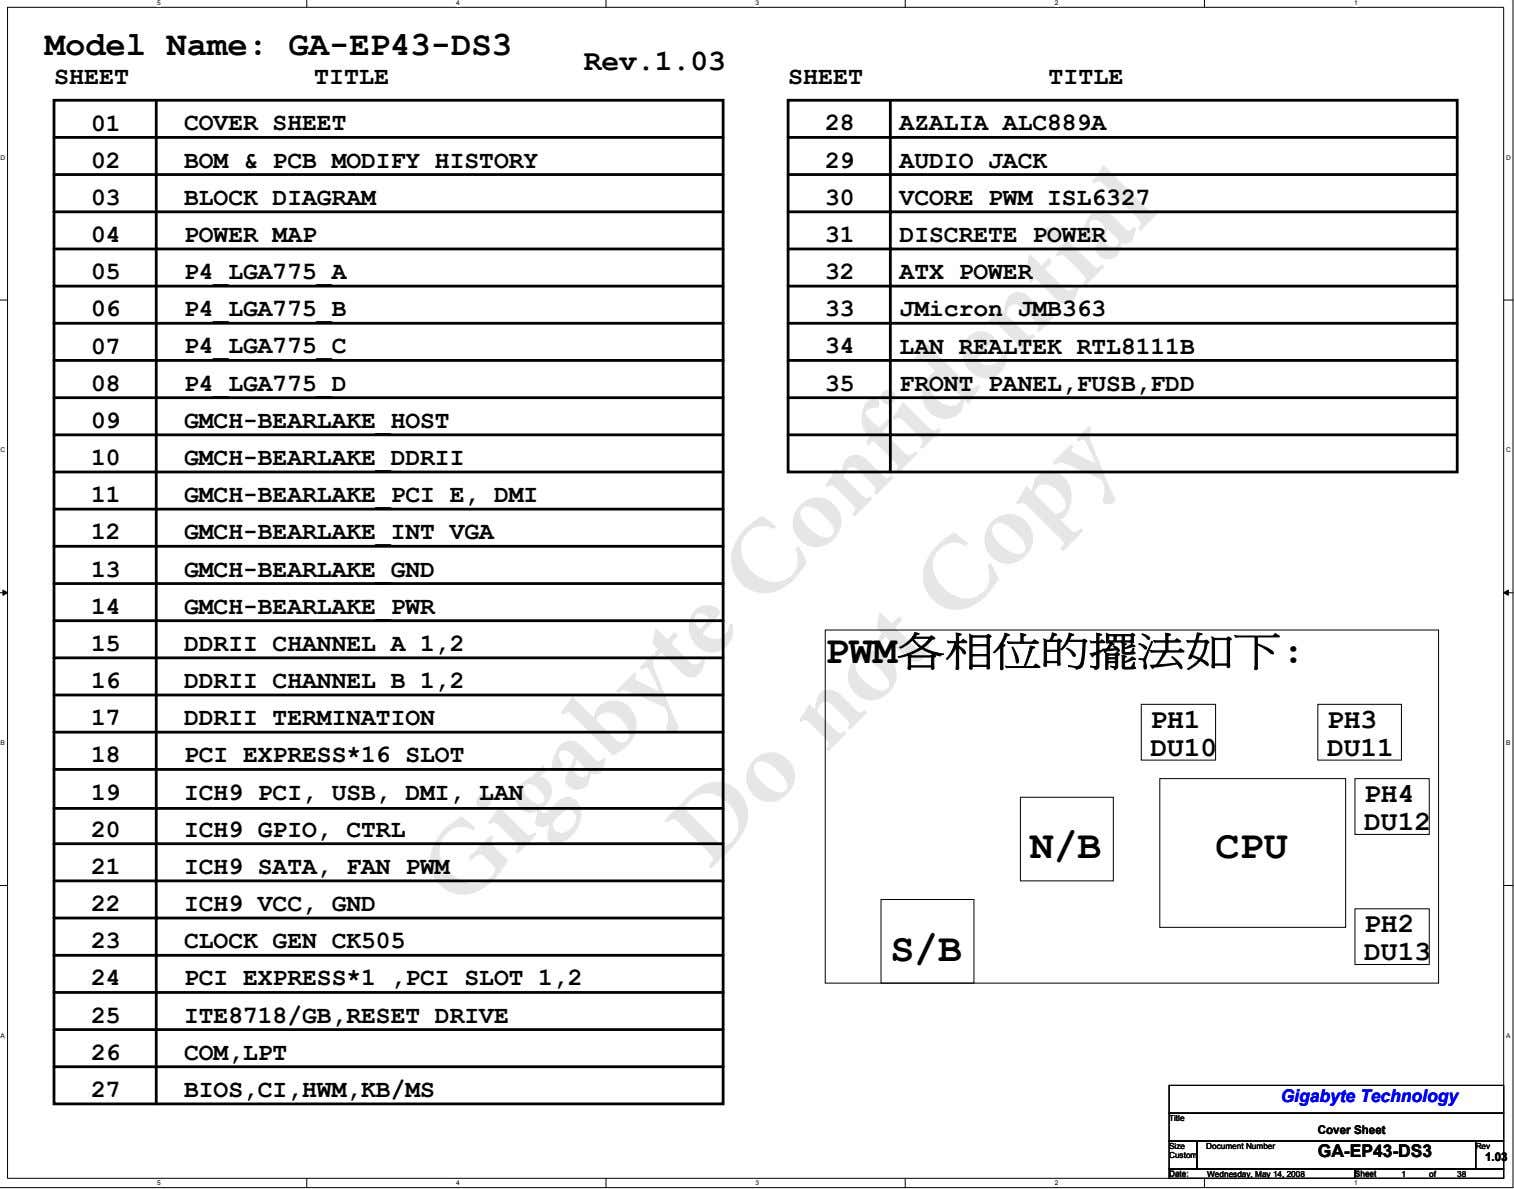 5 4 3 2 1 Model Name: GA-EP43-DS3 Rev.1.03 SHEET TITLE SHEET TITLE 01 COVER